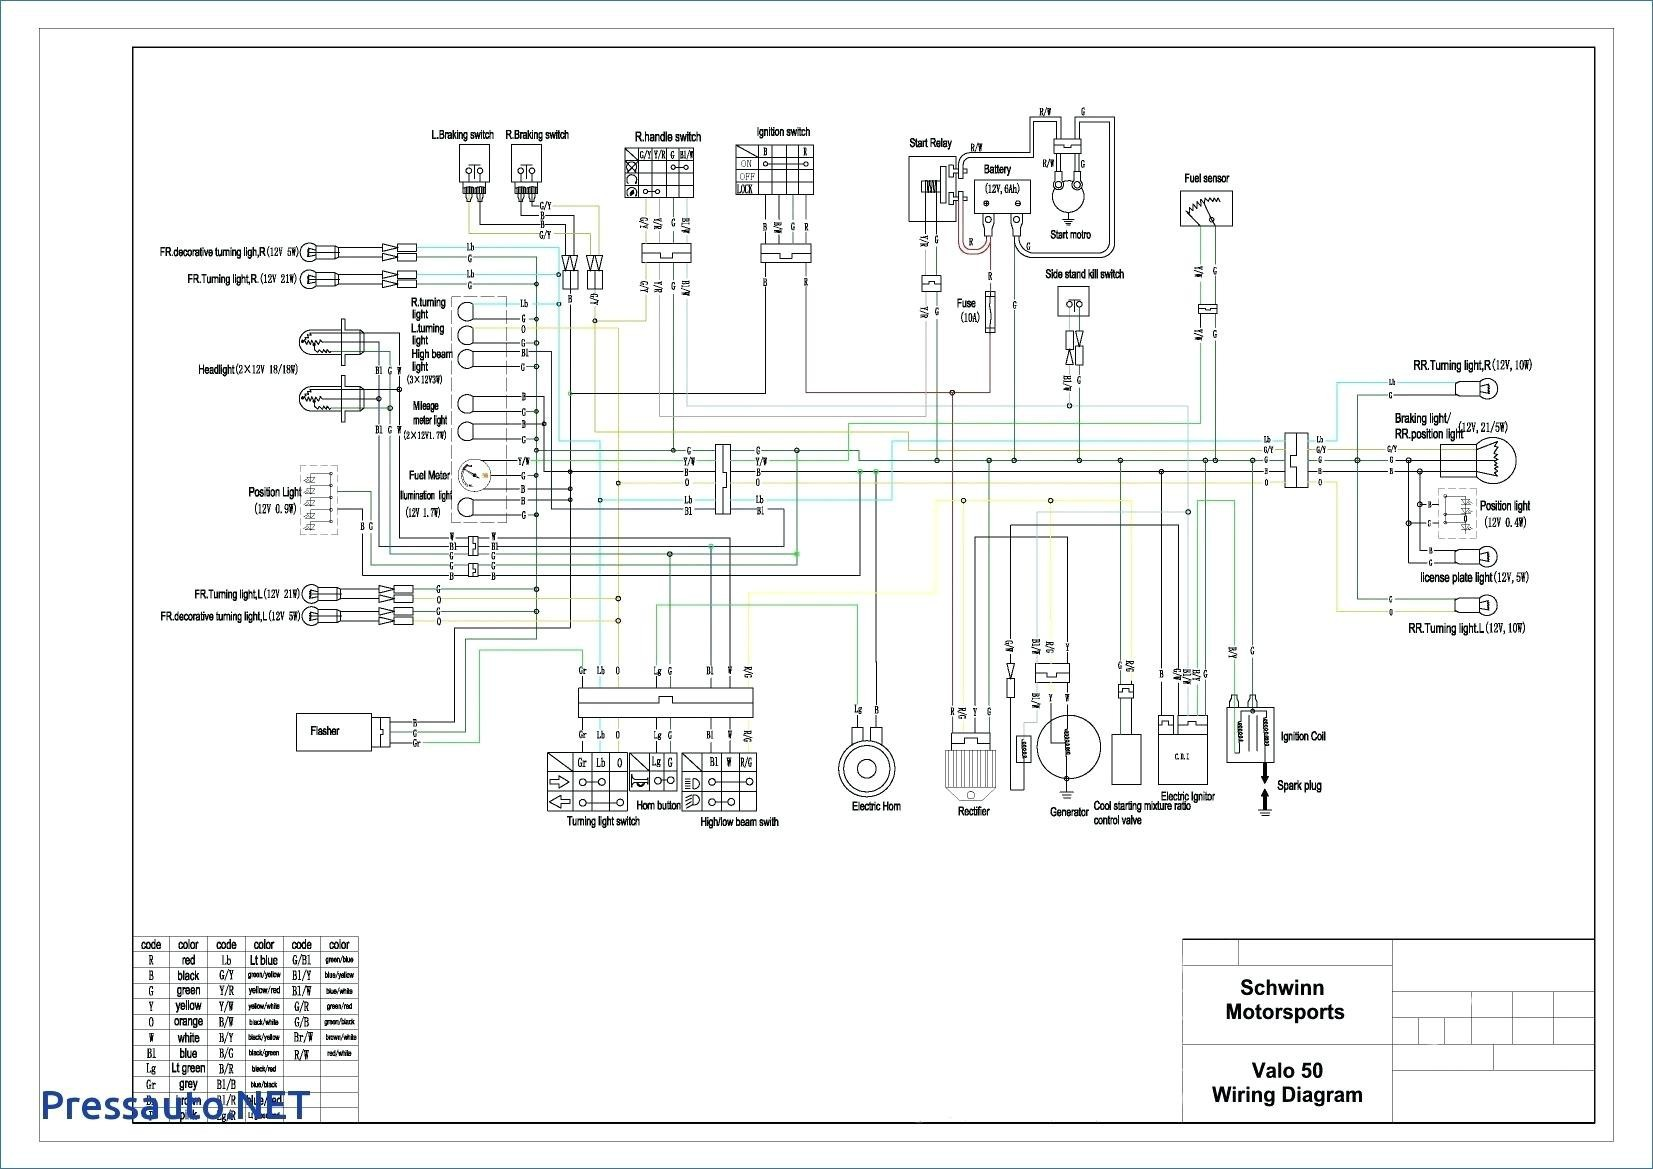 E04E Dish Network Receiver Wiring Diagram | Wiring LibraryWiring Library